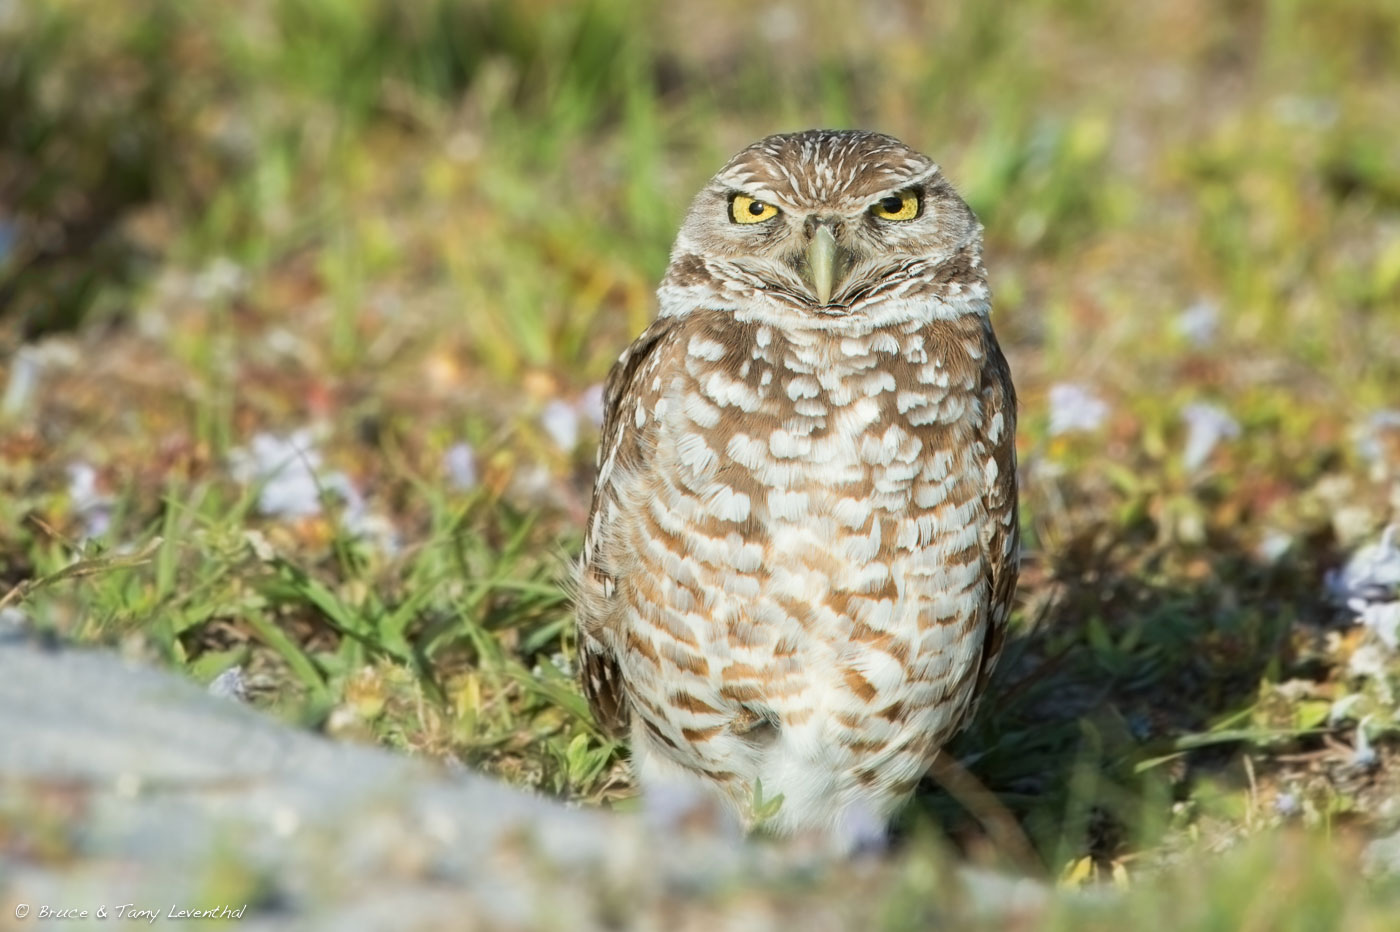 Burrowing Owl 1 ( Athene cunicularia )  Nikon D4 + Nikon 200-400mm f4VR (Cropped to tighten the composition)